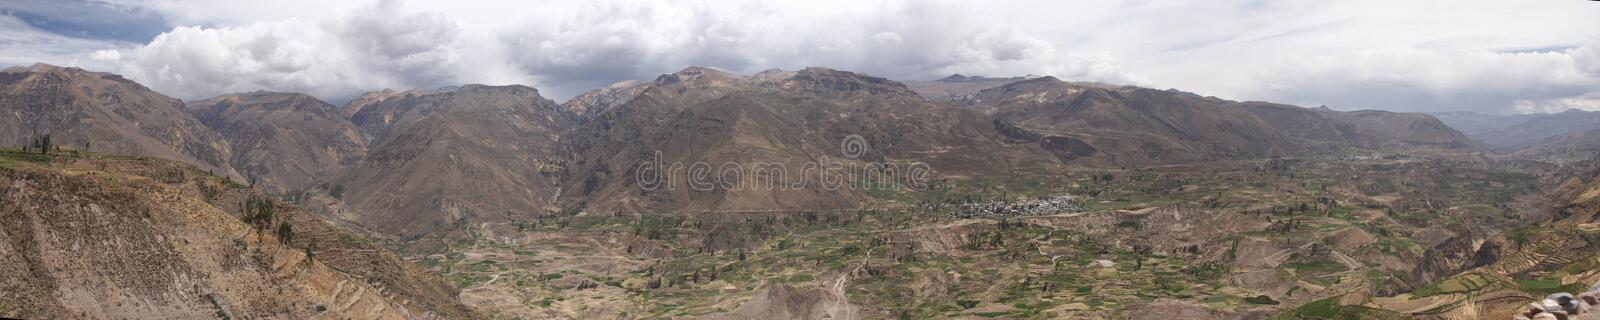 panorama de gorge et de vallée de colca photo libre de droits